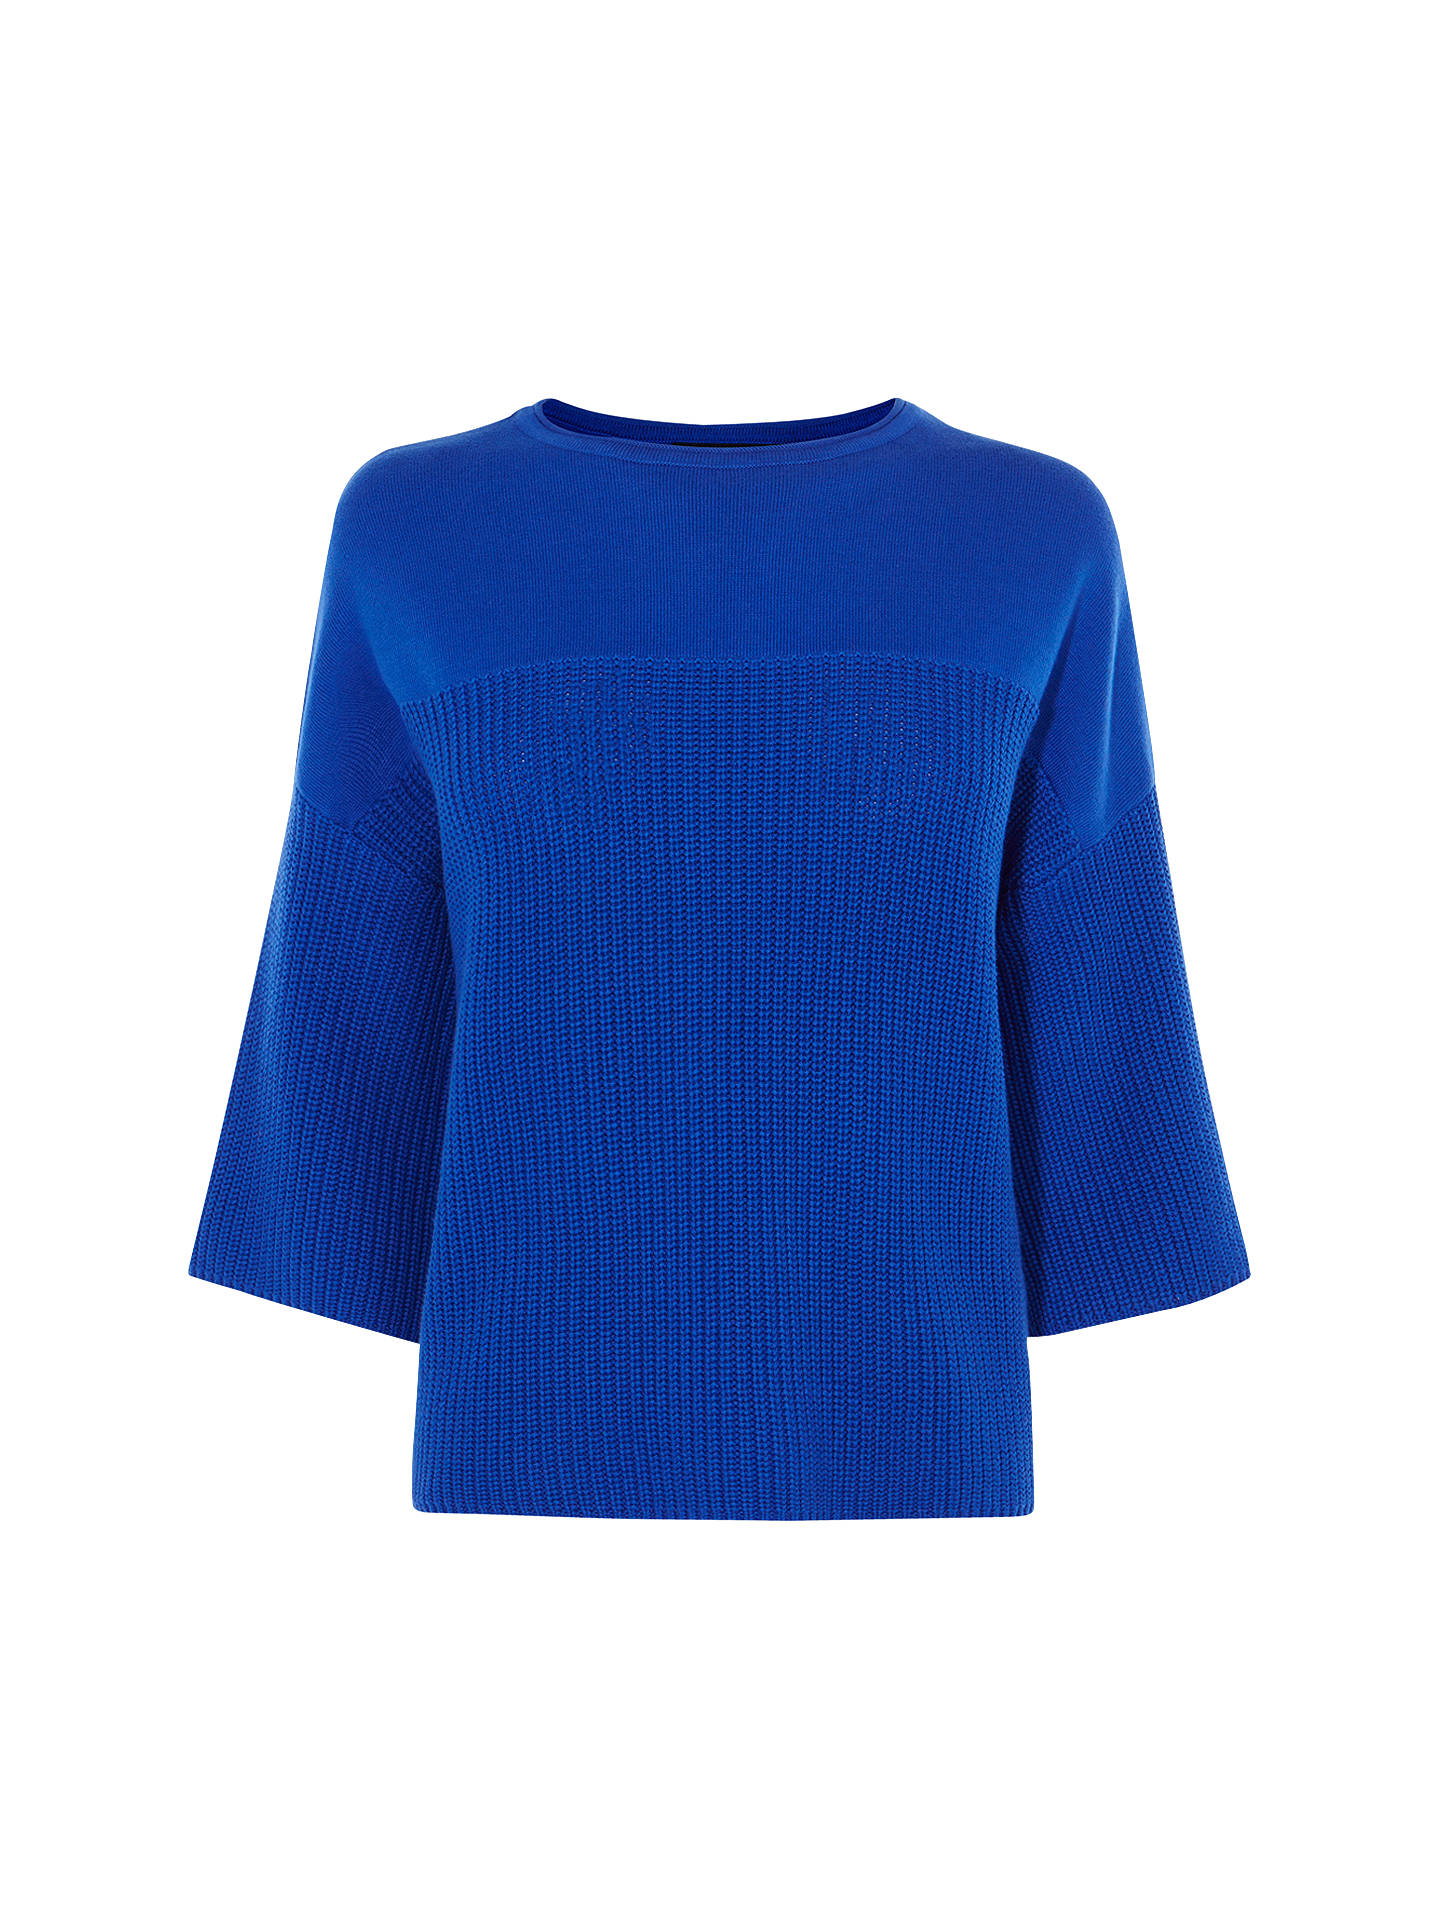 b8c13c341849e2 Buy Karen Millen Chunky Colourful Jumper, Blue, XS Online at johnlewis.com  ...